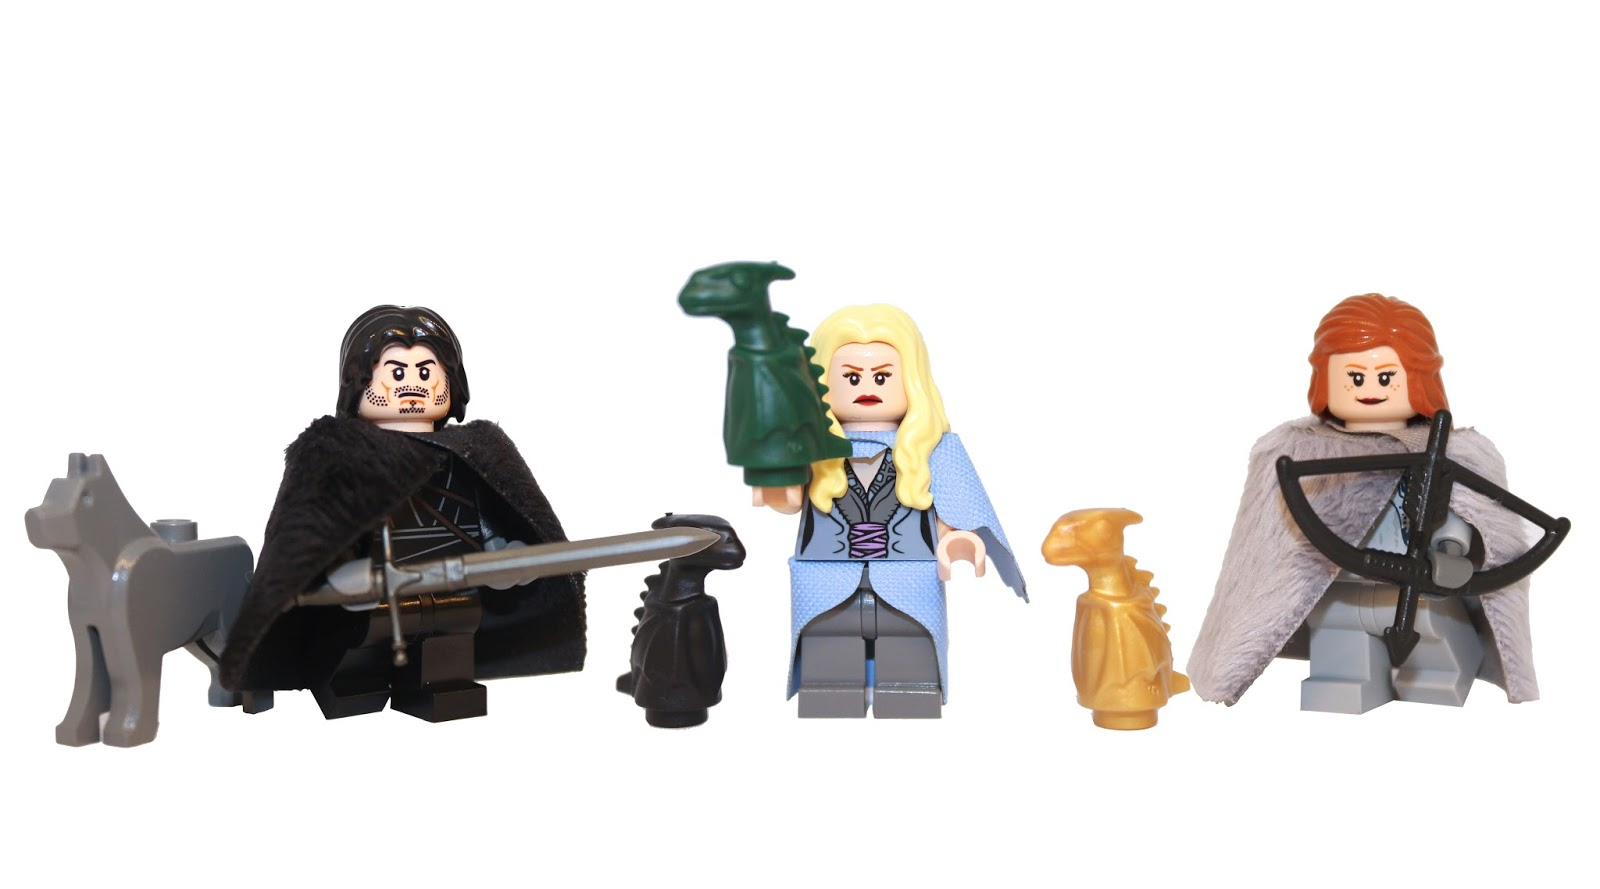 Lego Game of Thrones, game of thrones lego, demonhunter bricks, jon snow lego, ygritte lego, daenerys lego, custom lego, custom mini figures